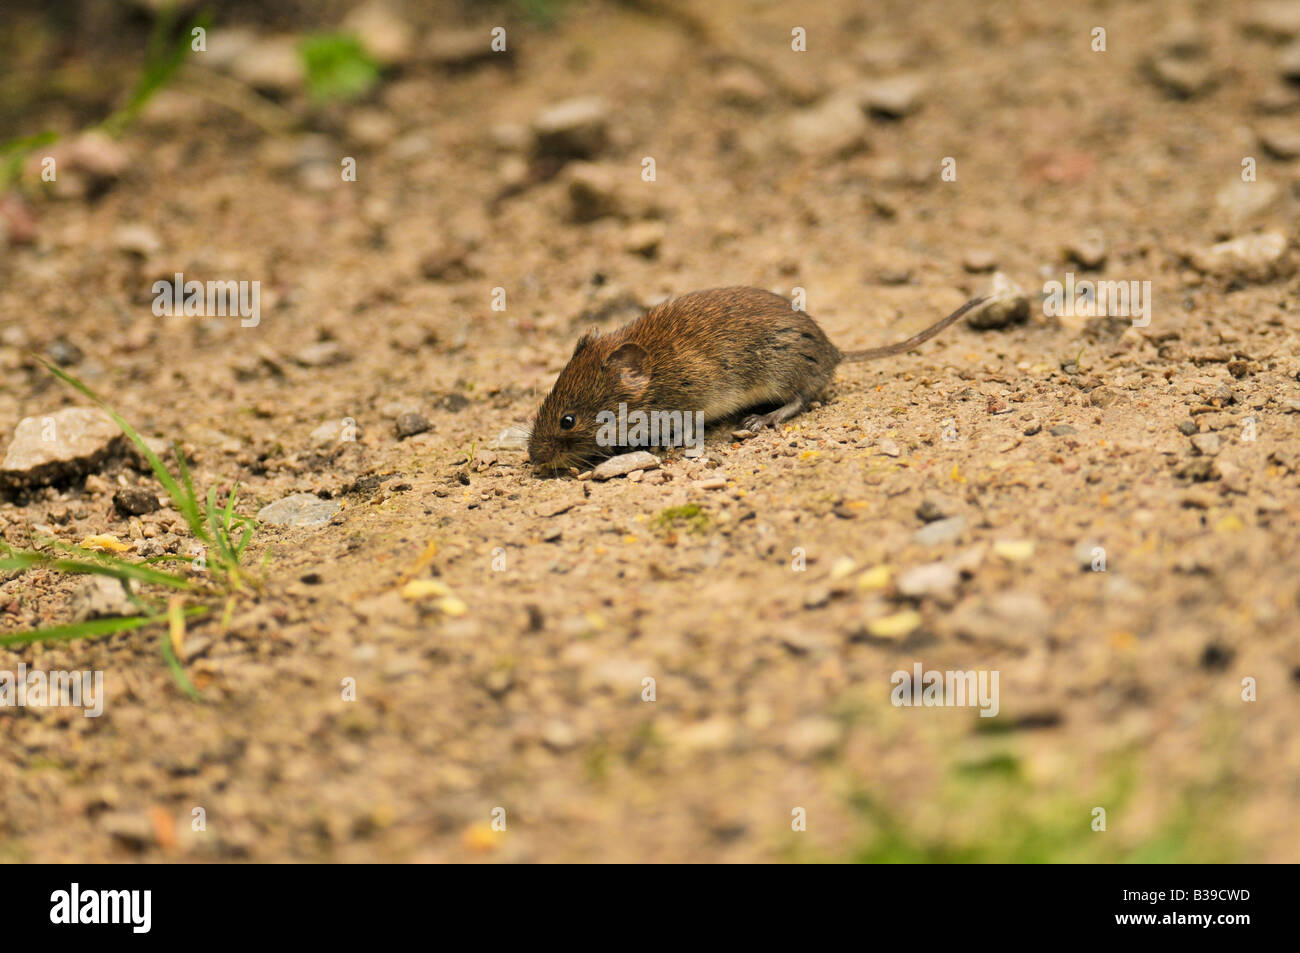 Common Bank Vole Clethrionomys glareolus running around feeding in small scrub clearing in scrub area of woodland - Stock Image